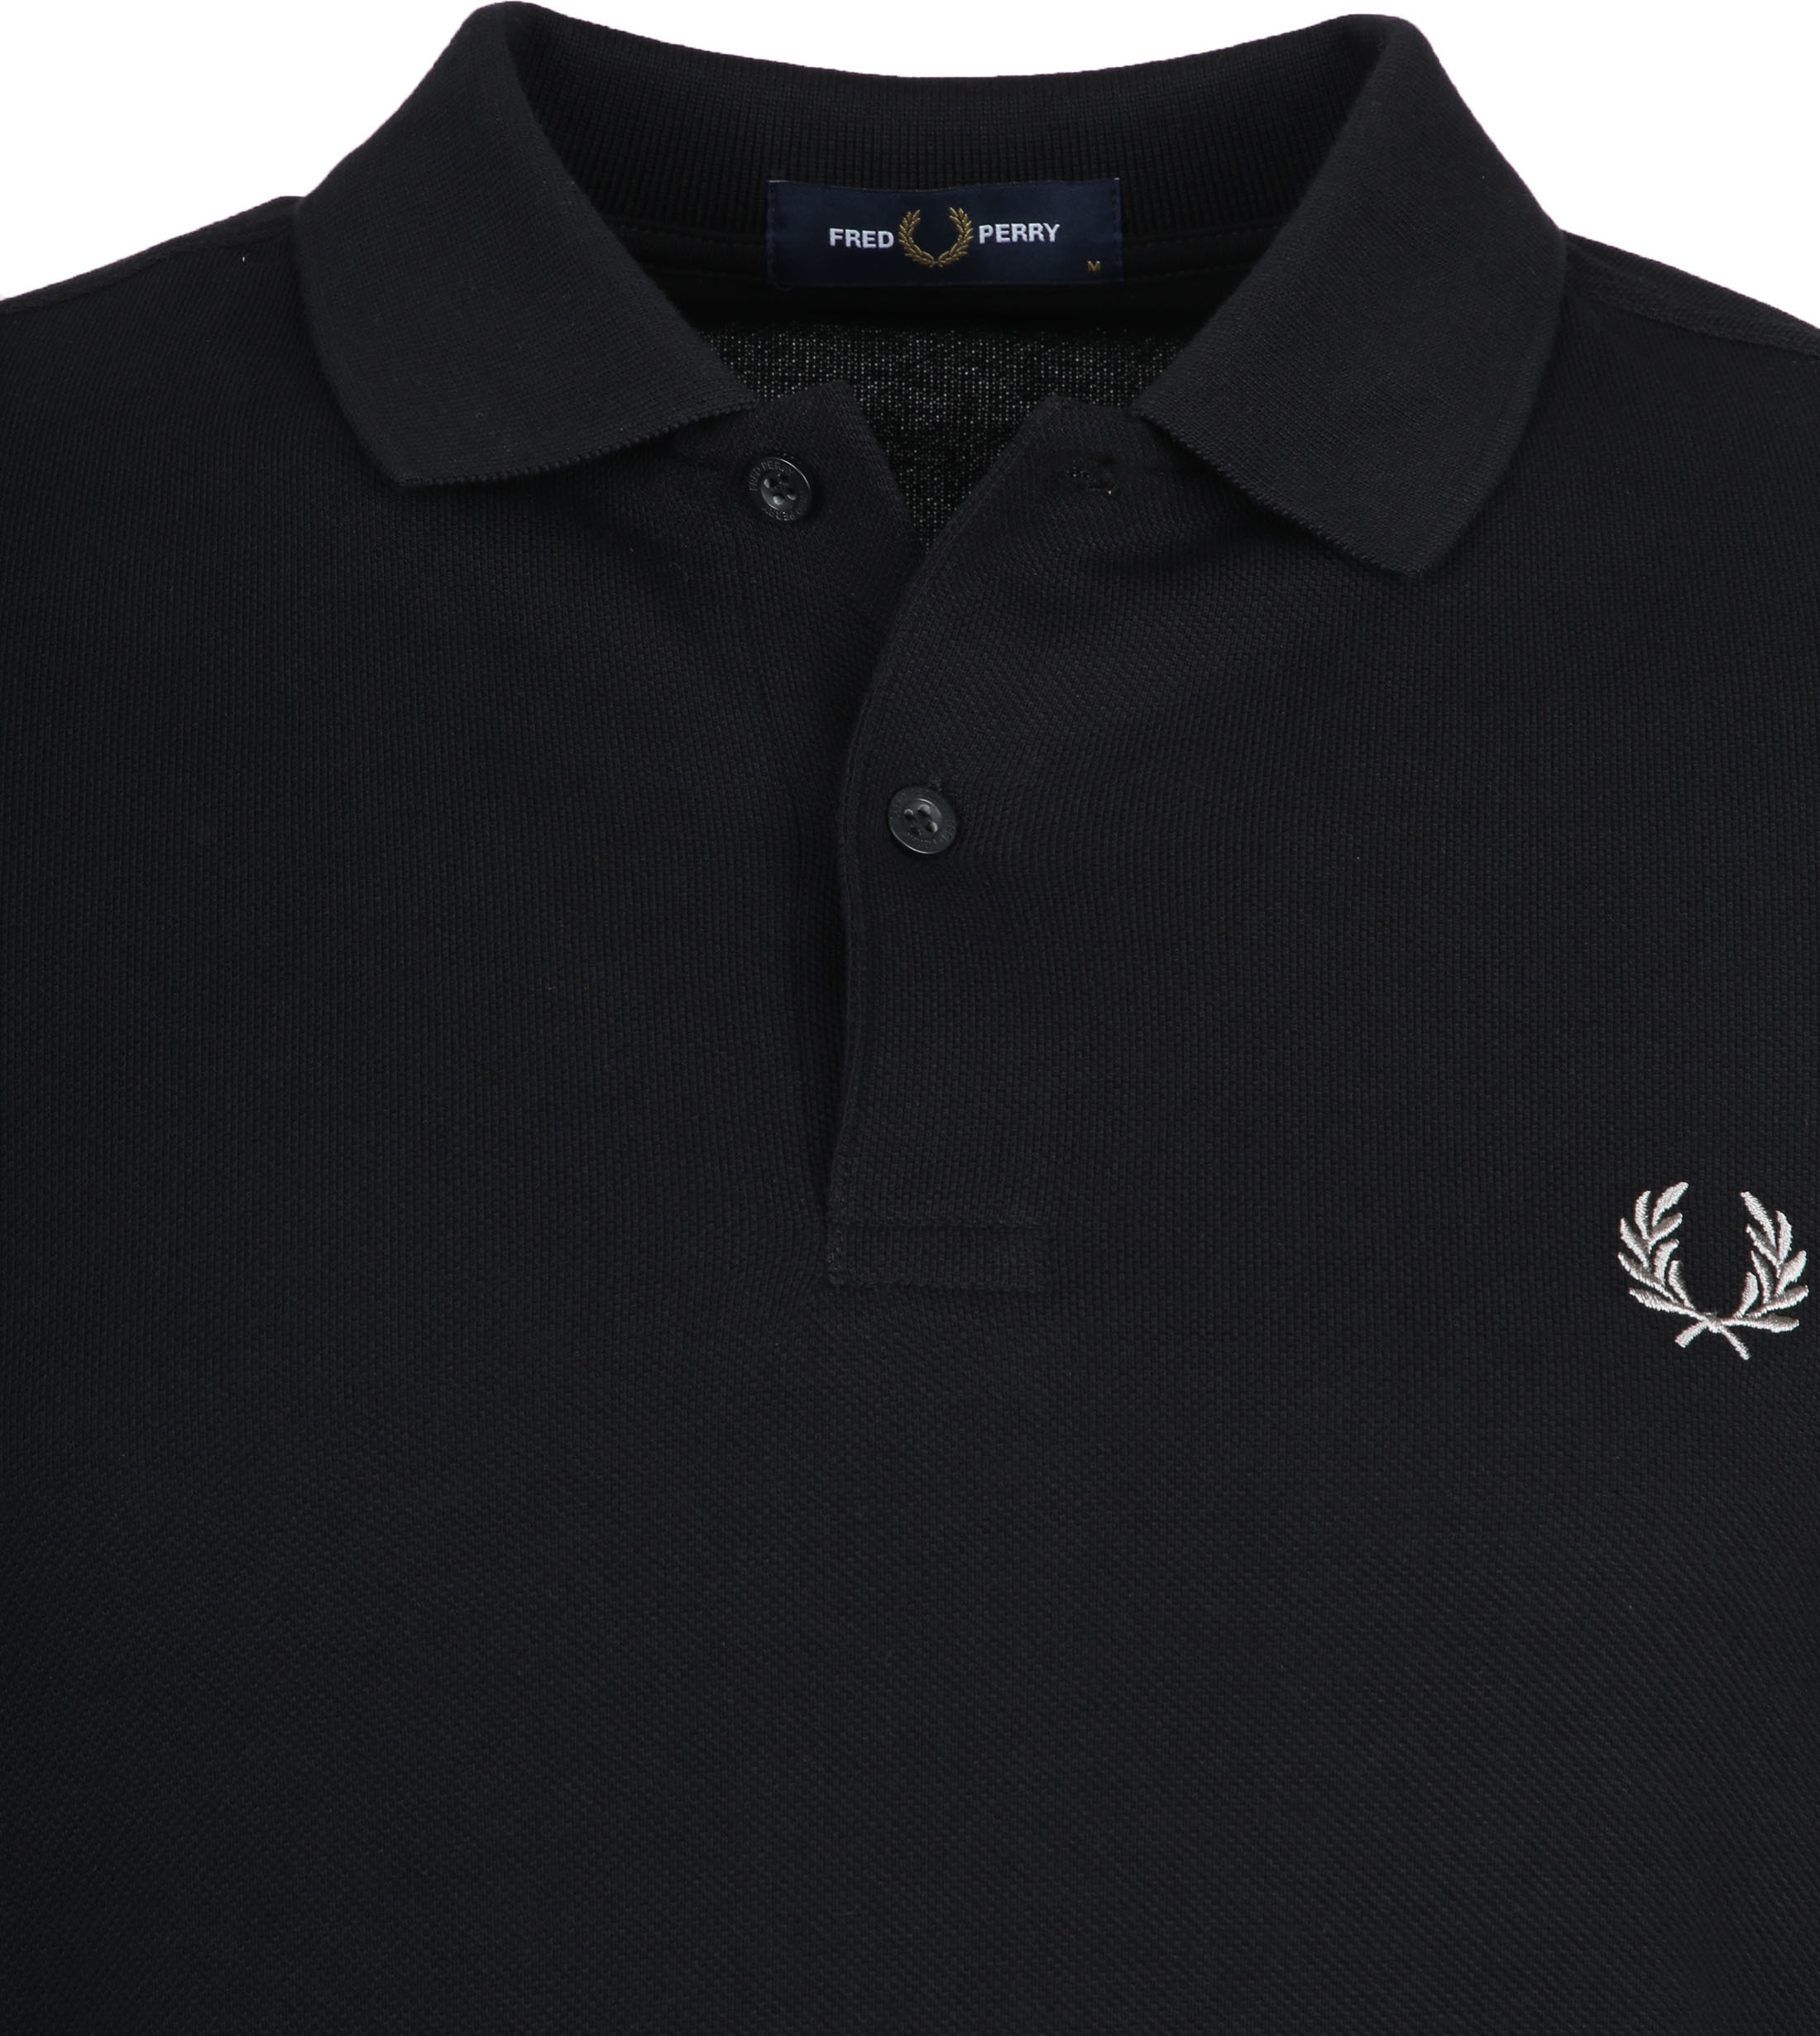 Fred Perry Polo Shirt Black 906